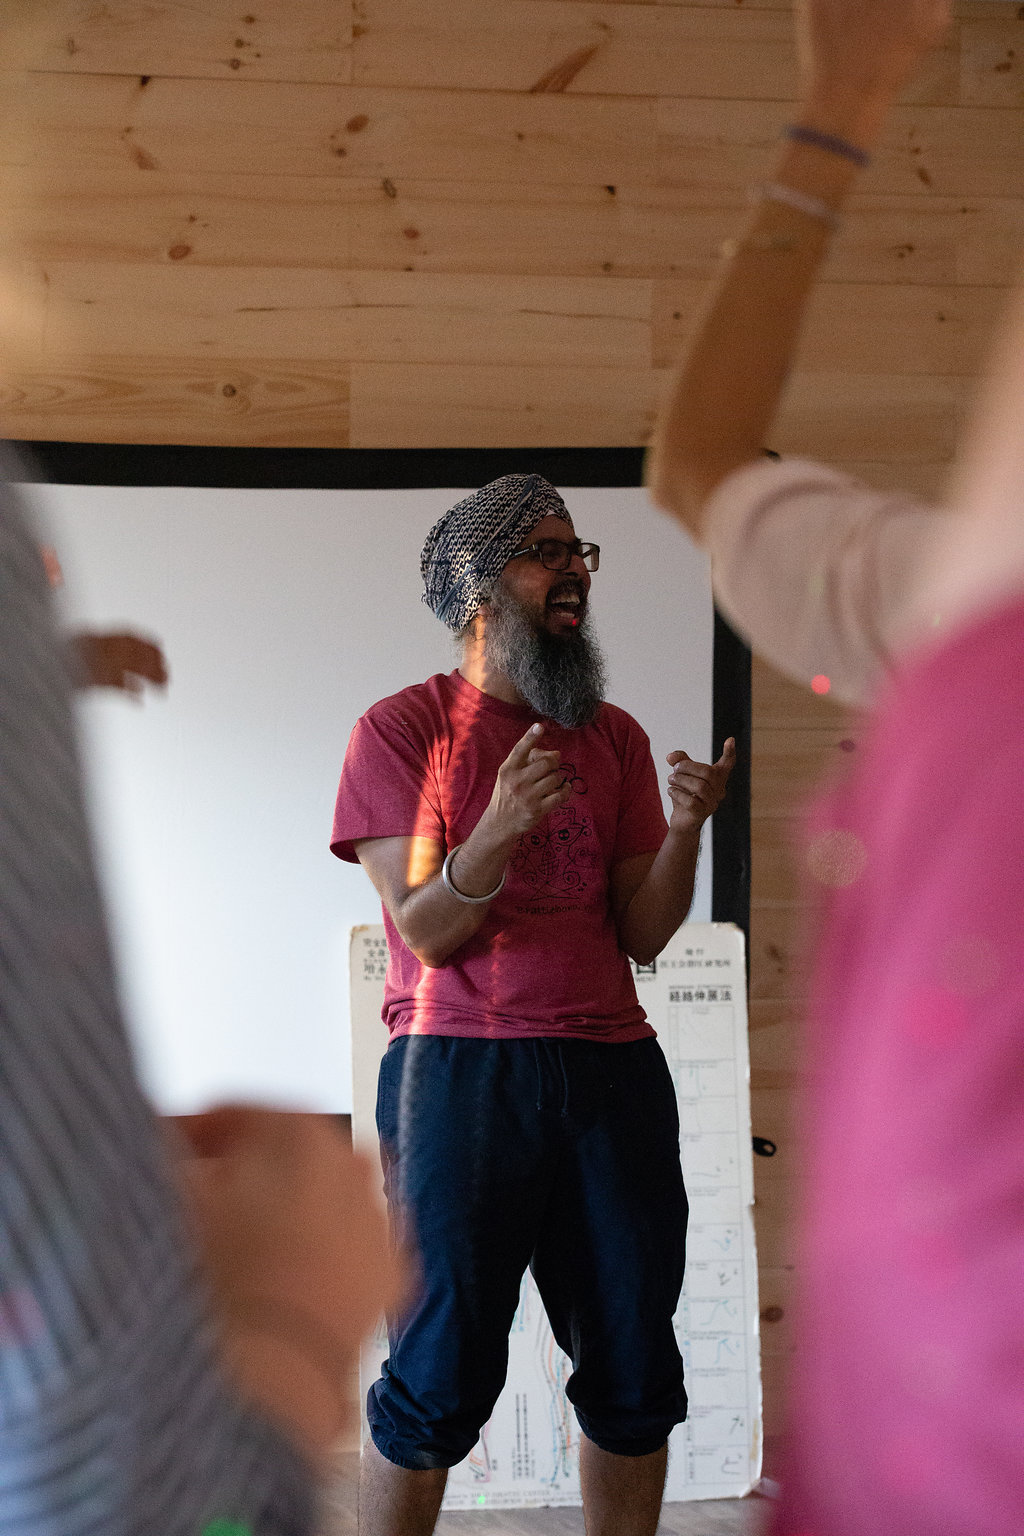 """Harmeet Singh,   General Council and Husband    Harmeet was born and raised in India where he experienced the culture that yoga flourishes within, from a mother who cooked using Ayurvedic principals, to a father who took a disciplined and devotional approach to physical asana practice; and from studying the spiritual texts to learning verses and mantras.   At the age of 18, a more serious practice of asana began as a means to solve for a lower back problem. At the time, bare-floor practice was how things were done, no engineered Manduka mats cushioning his jump backs. He started practicing at a local shala with a master teacher who had little time for frills. Upon arrival, he saw students being yelled at and poked and prodded with a stick that appeared to be the teachers best friend. The teacher asked him only one question upon accepting him as a student, he asked, """"have you arrived"""". Harmeet responded confused, """"yes"""". The teacher then repeated that mantra four more times, with Harmeet becoming increasingly confused. After a sufficient number of responses, he proceeded to teach Harmeet a series of asanas, allowing him to practice on his own after a few attempts. Harmeet, thinking he was progressing along was feeling happy about his practice, but was soon caught distracted. The medicine for this type of distraction was…a sharp stick poke in the side, followed by the question, """"You told me you arrived in body and mind. So, why did you leave?"""" This story resonated with Harmeet and he has aimed to create presence and a focusing inward in all that he does.  In his current work, Harmeet is a  Director of Innovation  and teaches creative thinking to many technically oriented professionals in the software industry. The ideas fostered through his work have become product offerings with top-tiered tech giants.  Through Setu Harmeet looks to promote laughter and North Indian dancing, in conjunction with meditation through different modalities. Harmeet also practices Ashtanga Y"""